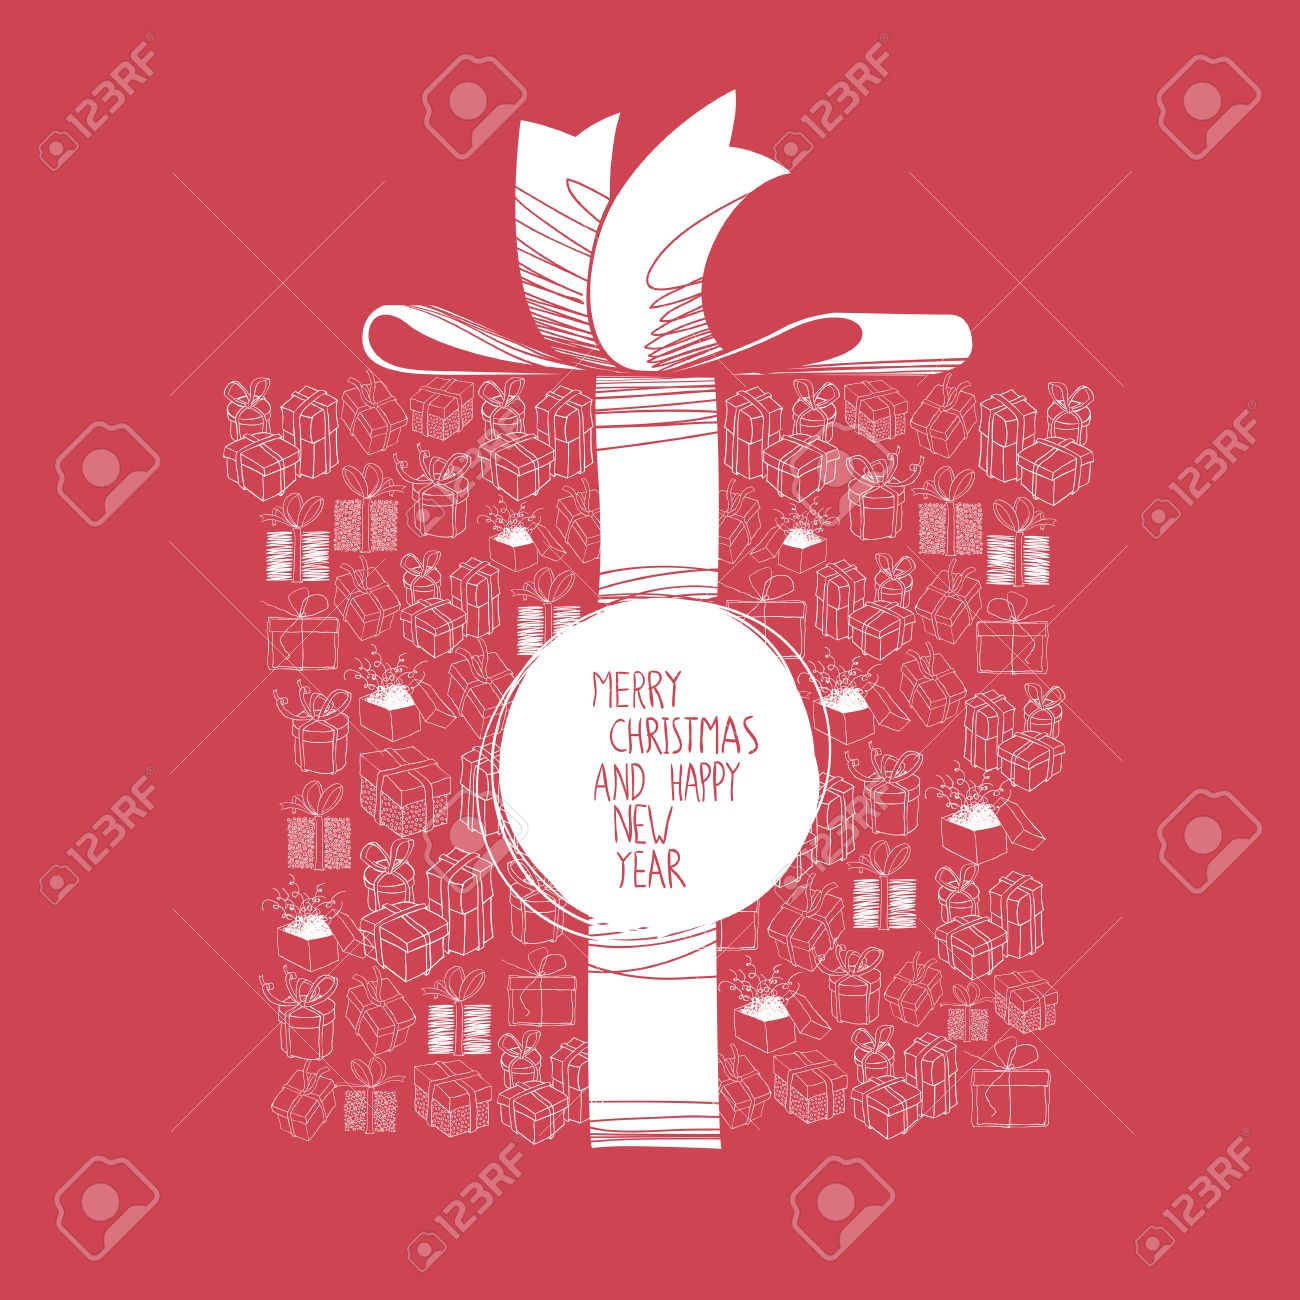 Merry christmas and happy new year greeting card template with merry christmas and happy new year greeting card template with a group of a xmas gift m4hsunfo